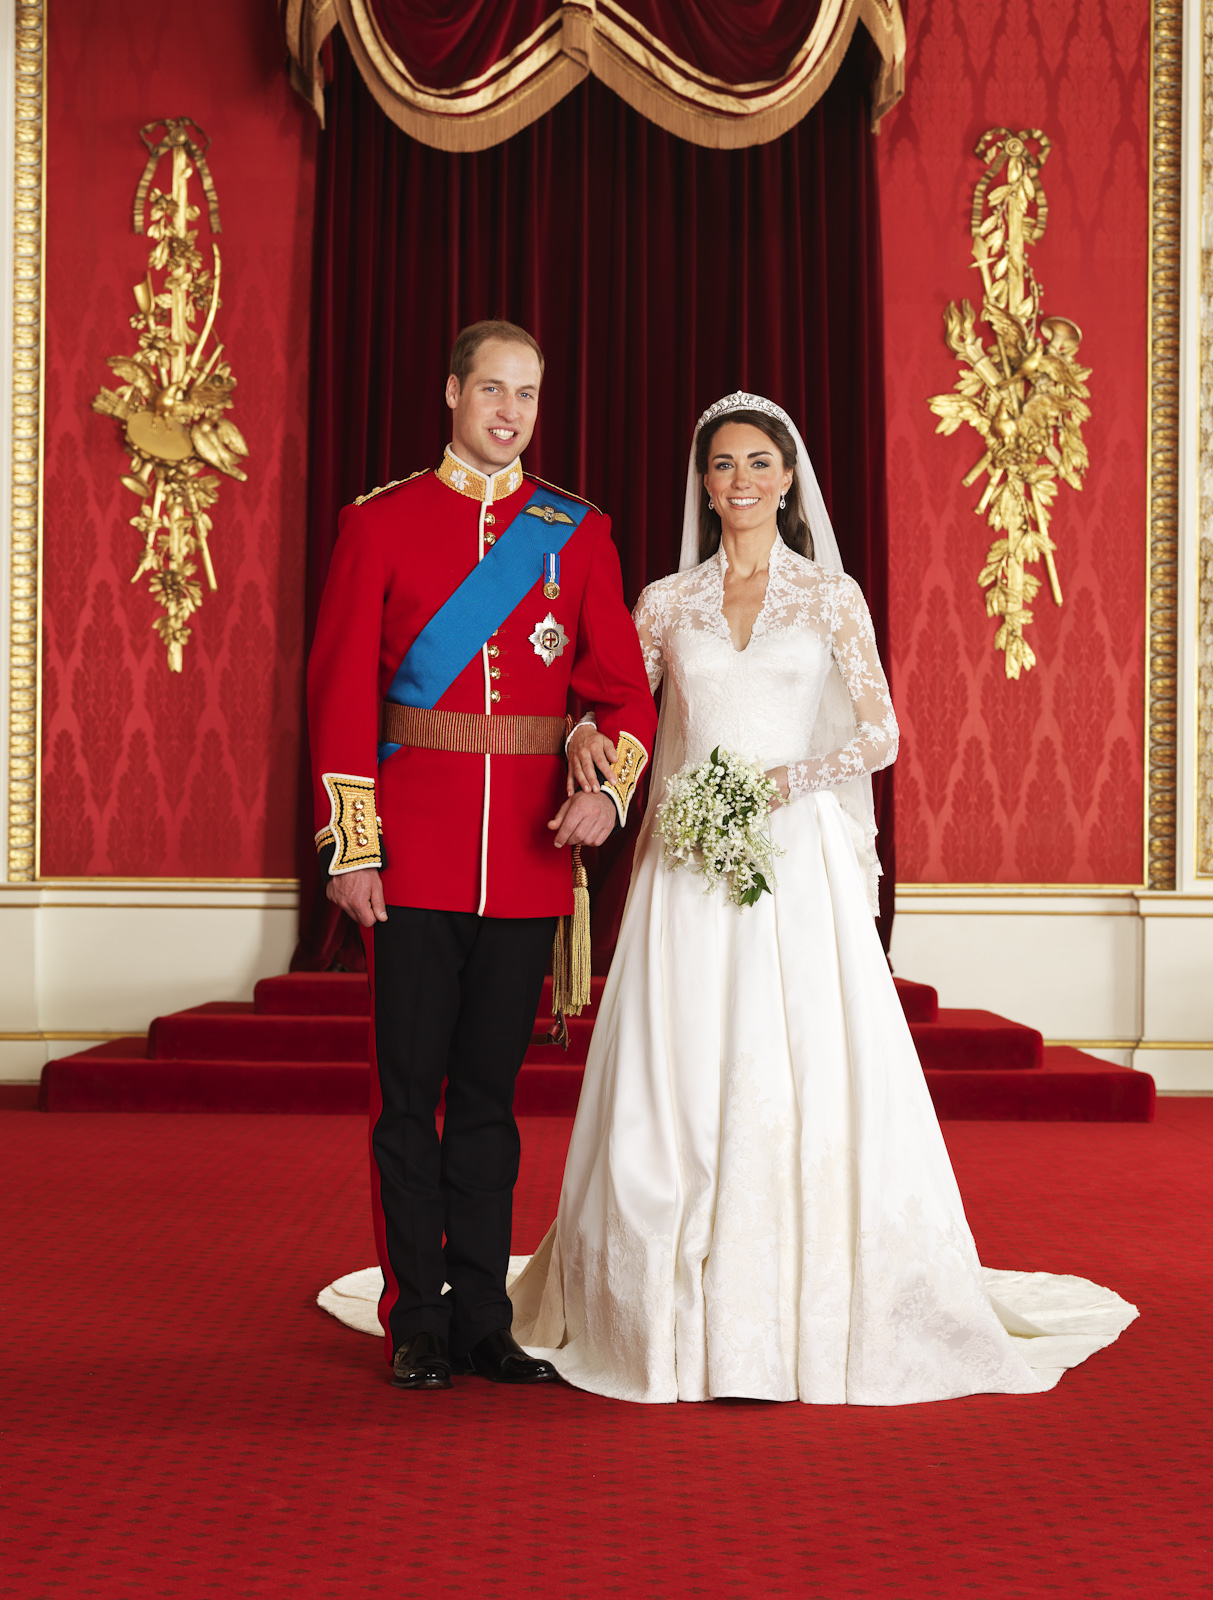 image from http://www.flickr.com/photos/britishmonarchy/5671668271/in/set-72157626613171058/